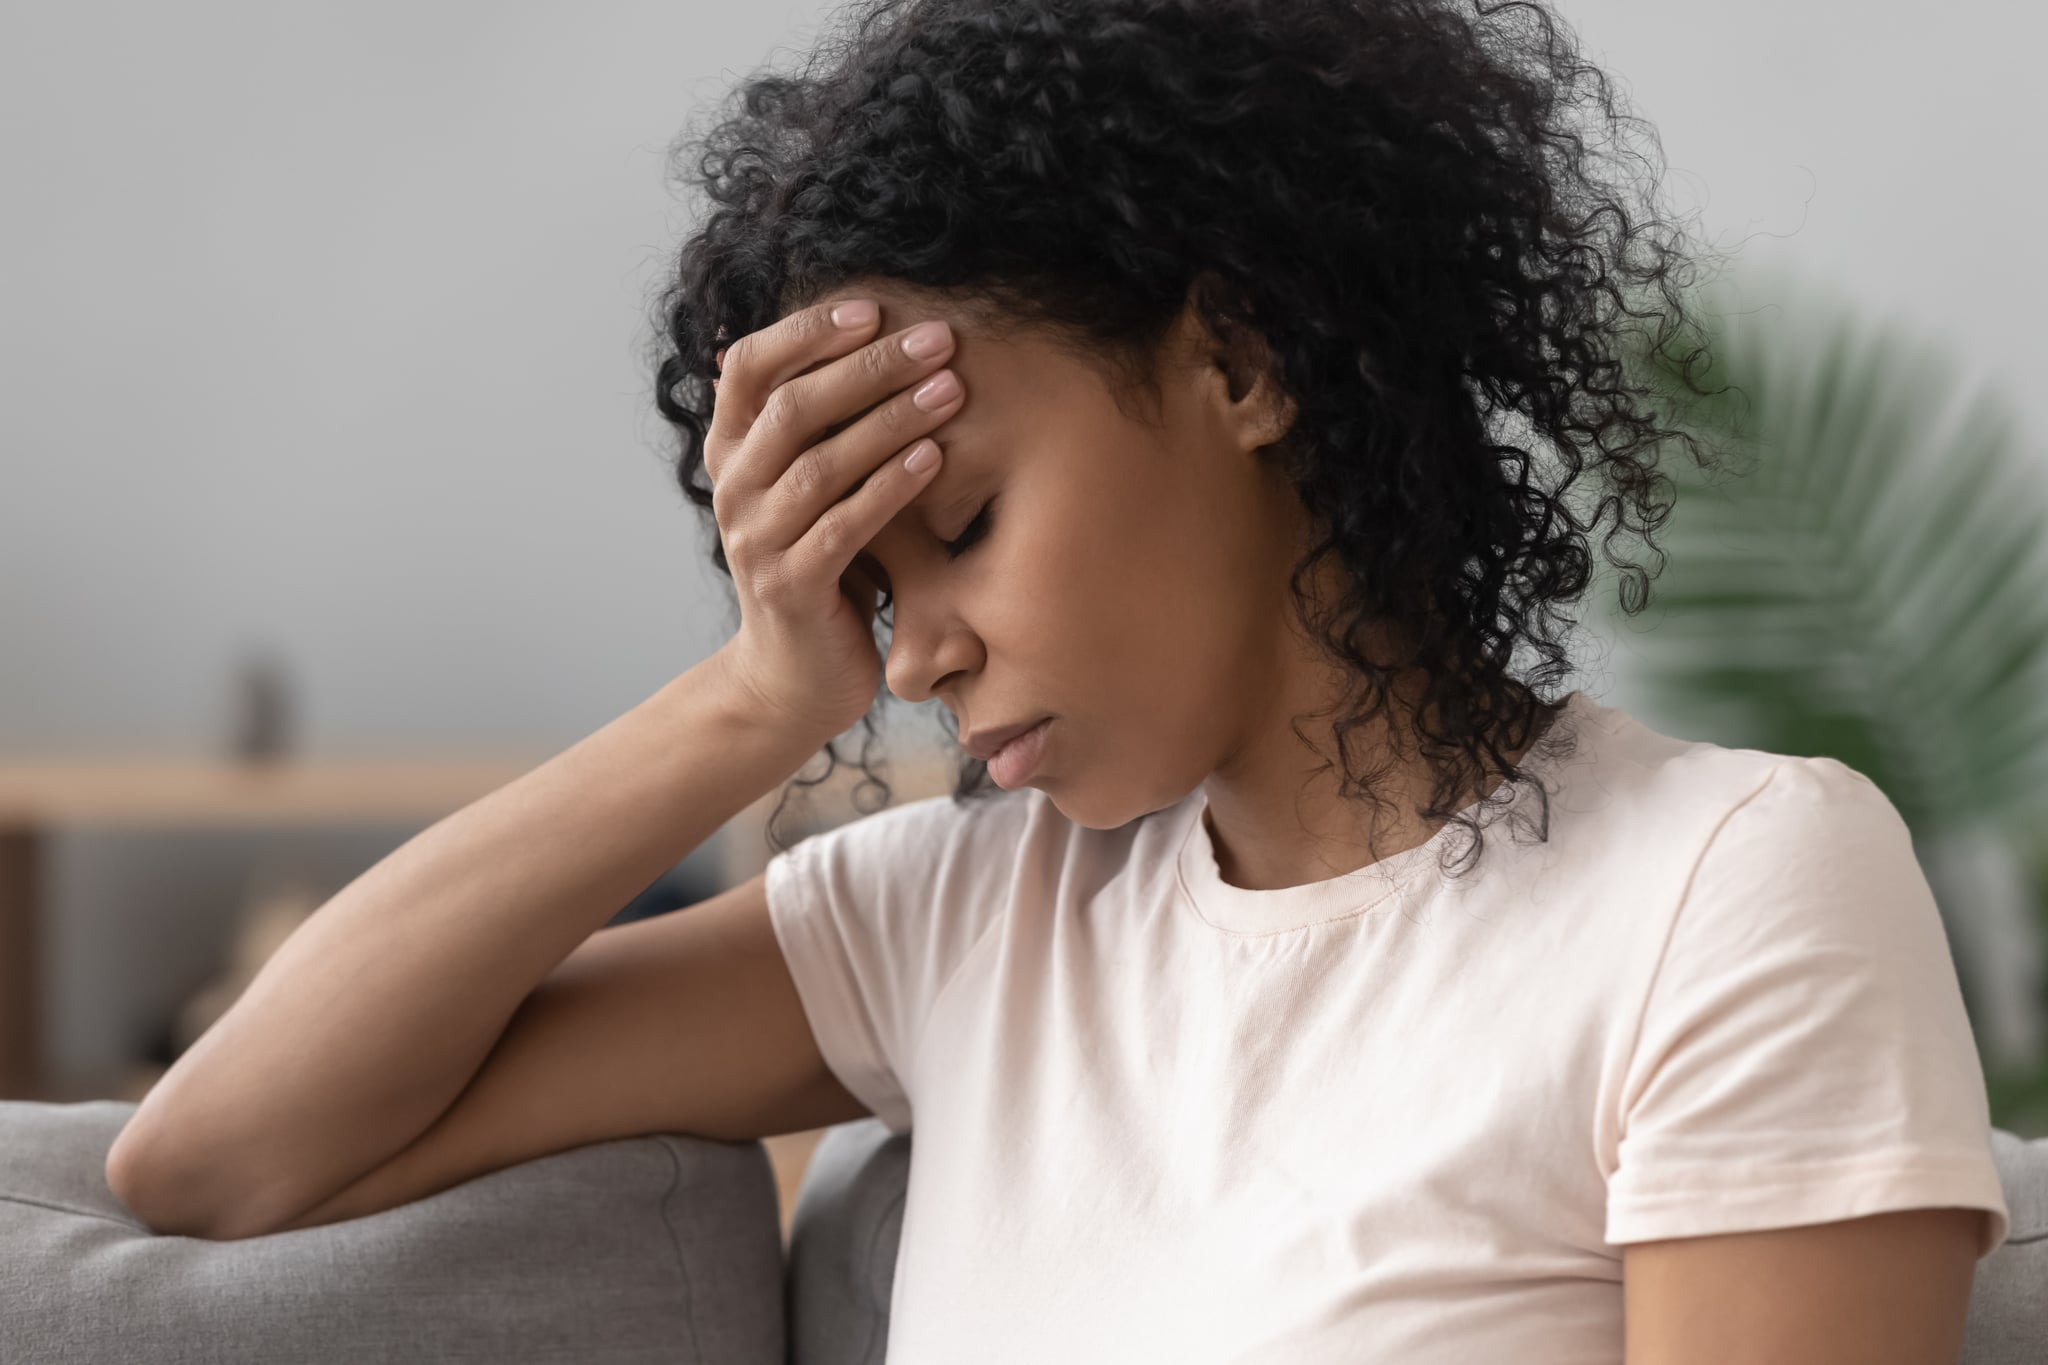 Close up african female sit on couch feels unhappy desperate thinking about personal difficulties mental health problems, 30s sad woman need psychological support goes through divorce break up concept